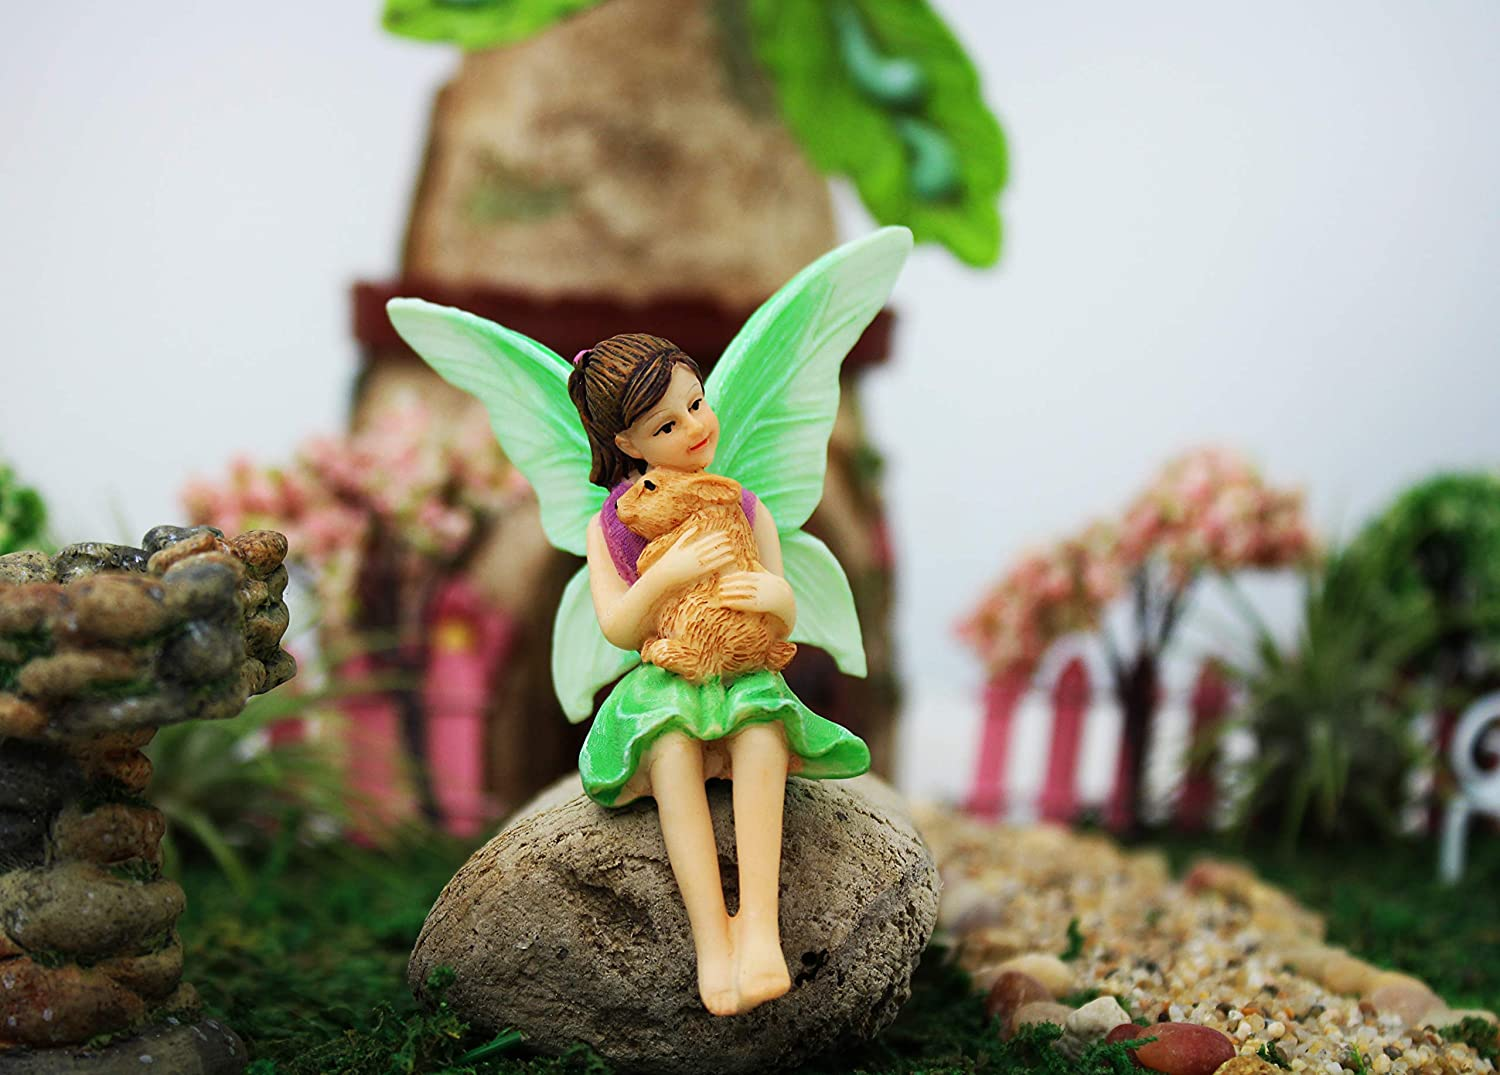 Great Max 72% OFF interest NW Wholesaler - Fairy Garden Miniat Painted Hand Figurines